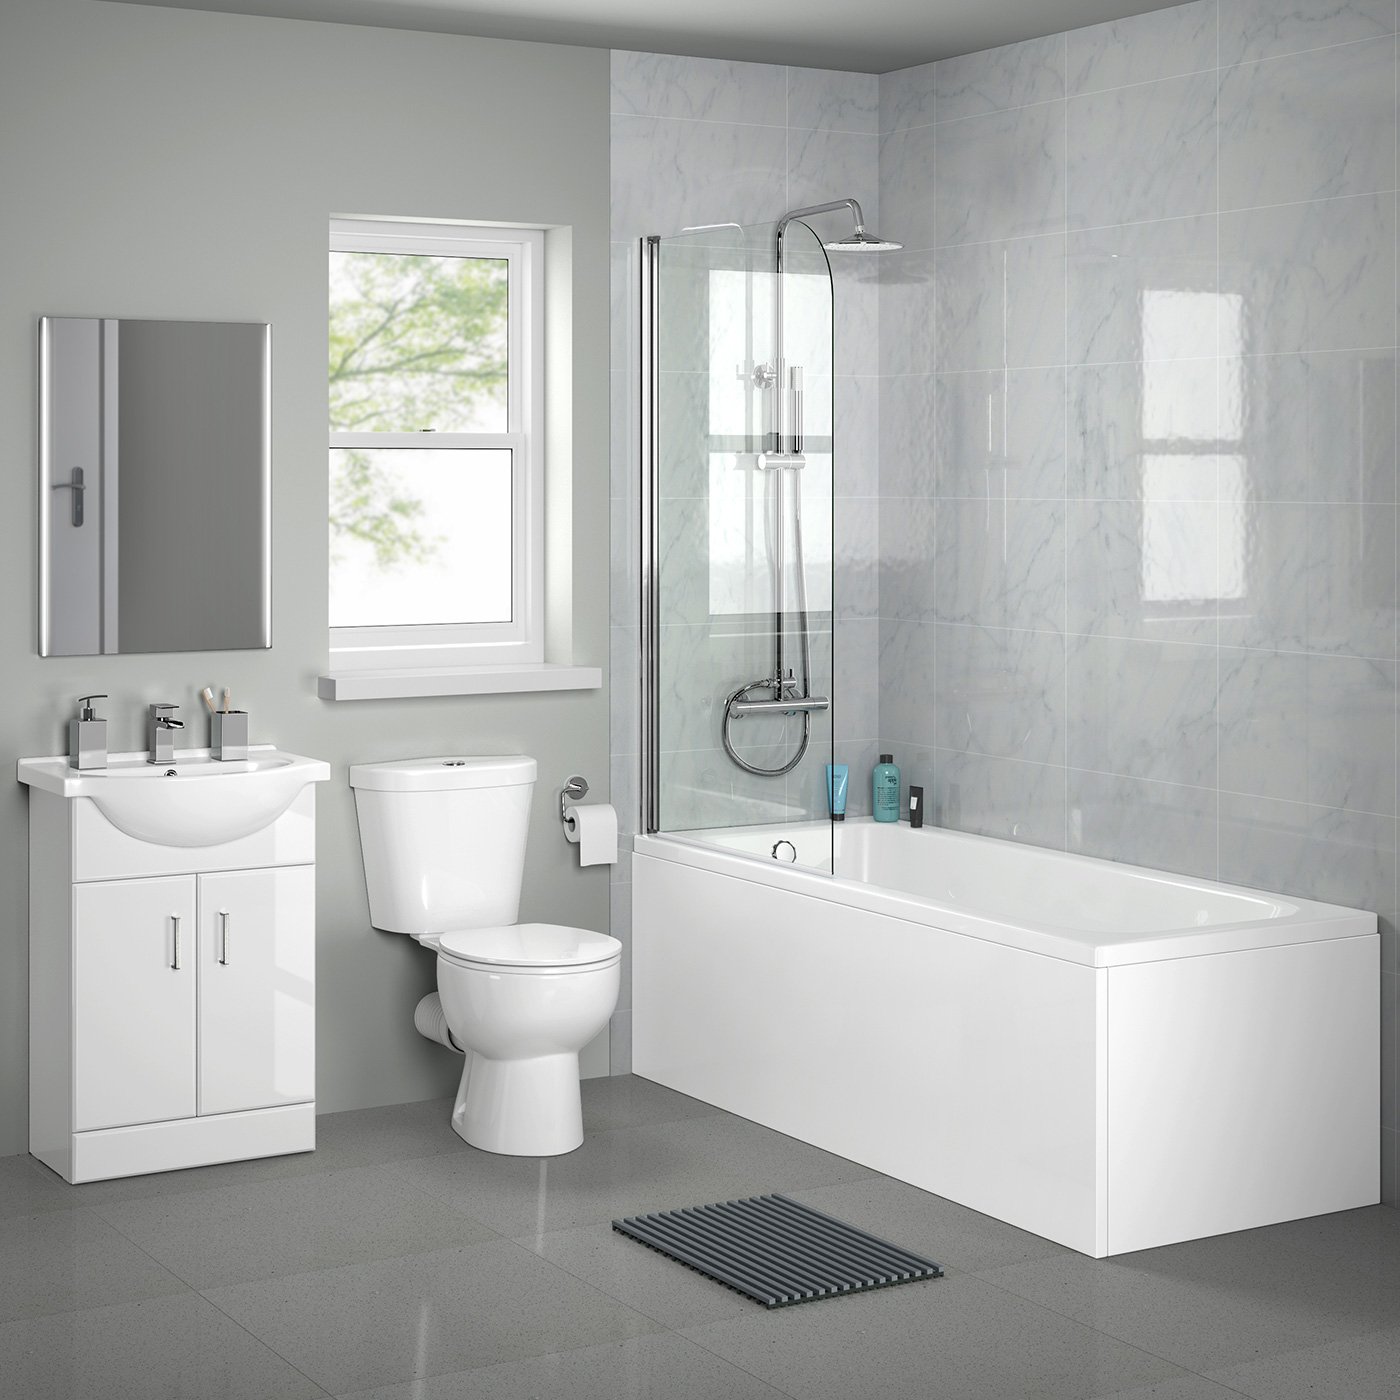 Bathroom suites accessories woodhouse sturnham ltd for Bathroom suites